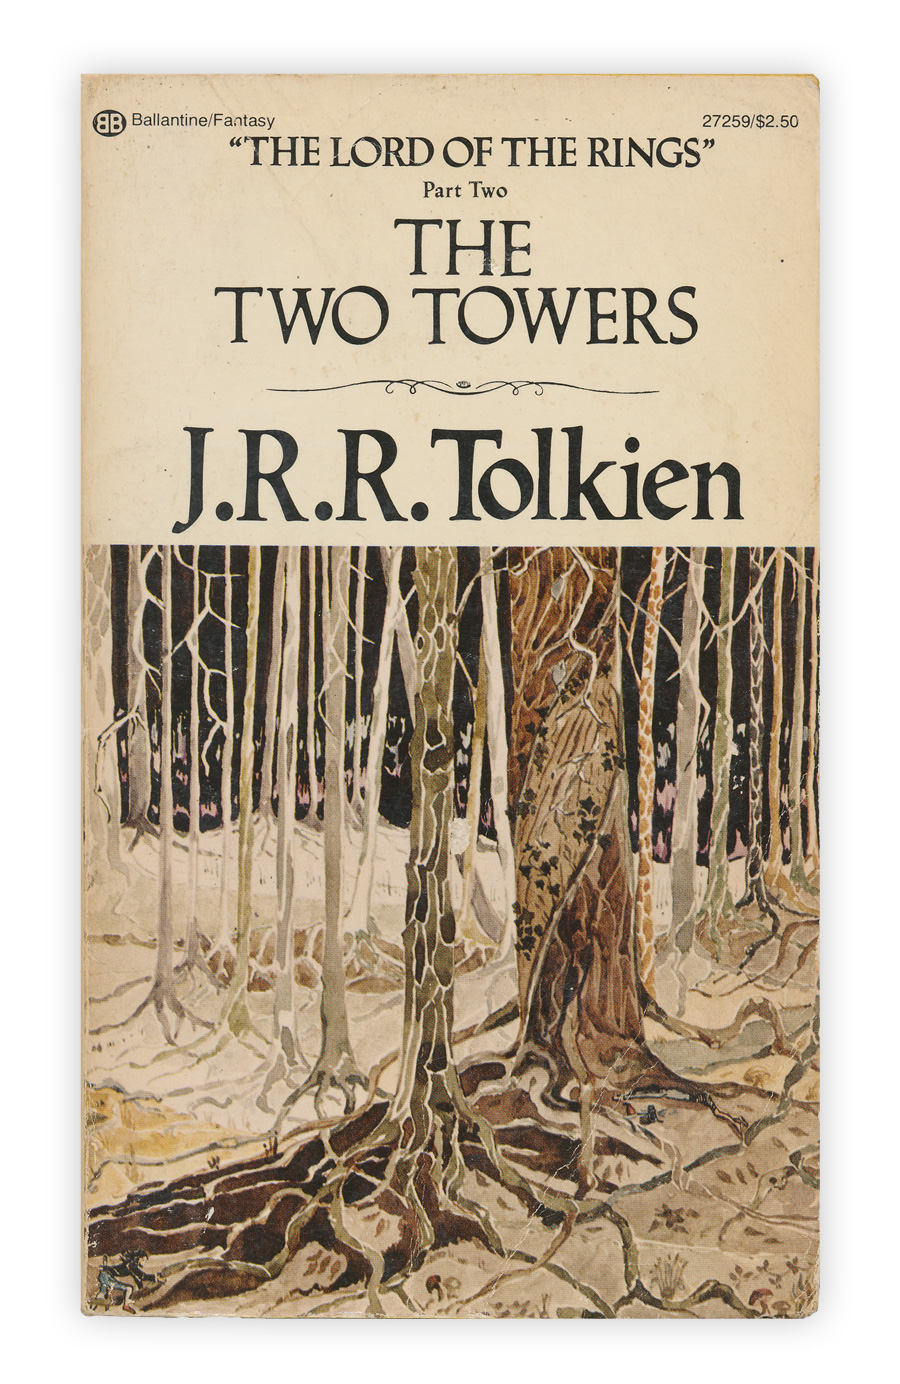 a comparison of the lord of the rings by jrr tolkien and the lord of the flies by william golding The lord of the rings: the fellowship of the ring warner , based on jrr tolkien's masterpiece, the lord of the rings: the fellowship of the ring is an epic adventure of good against evil, the power of friendship and individual.